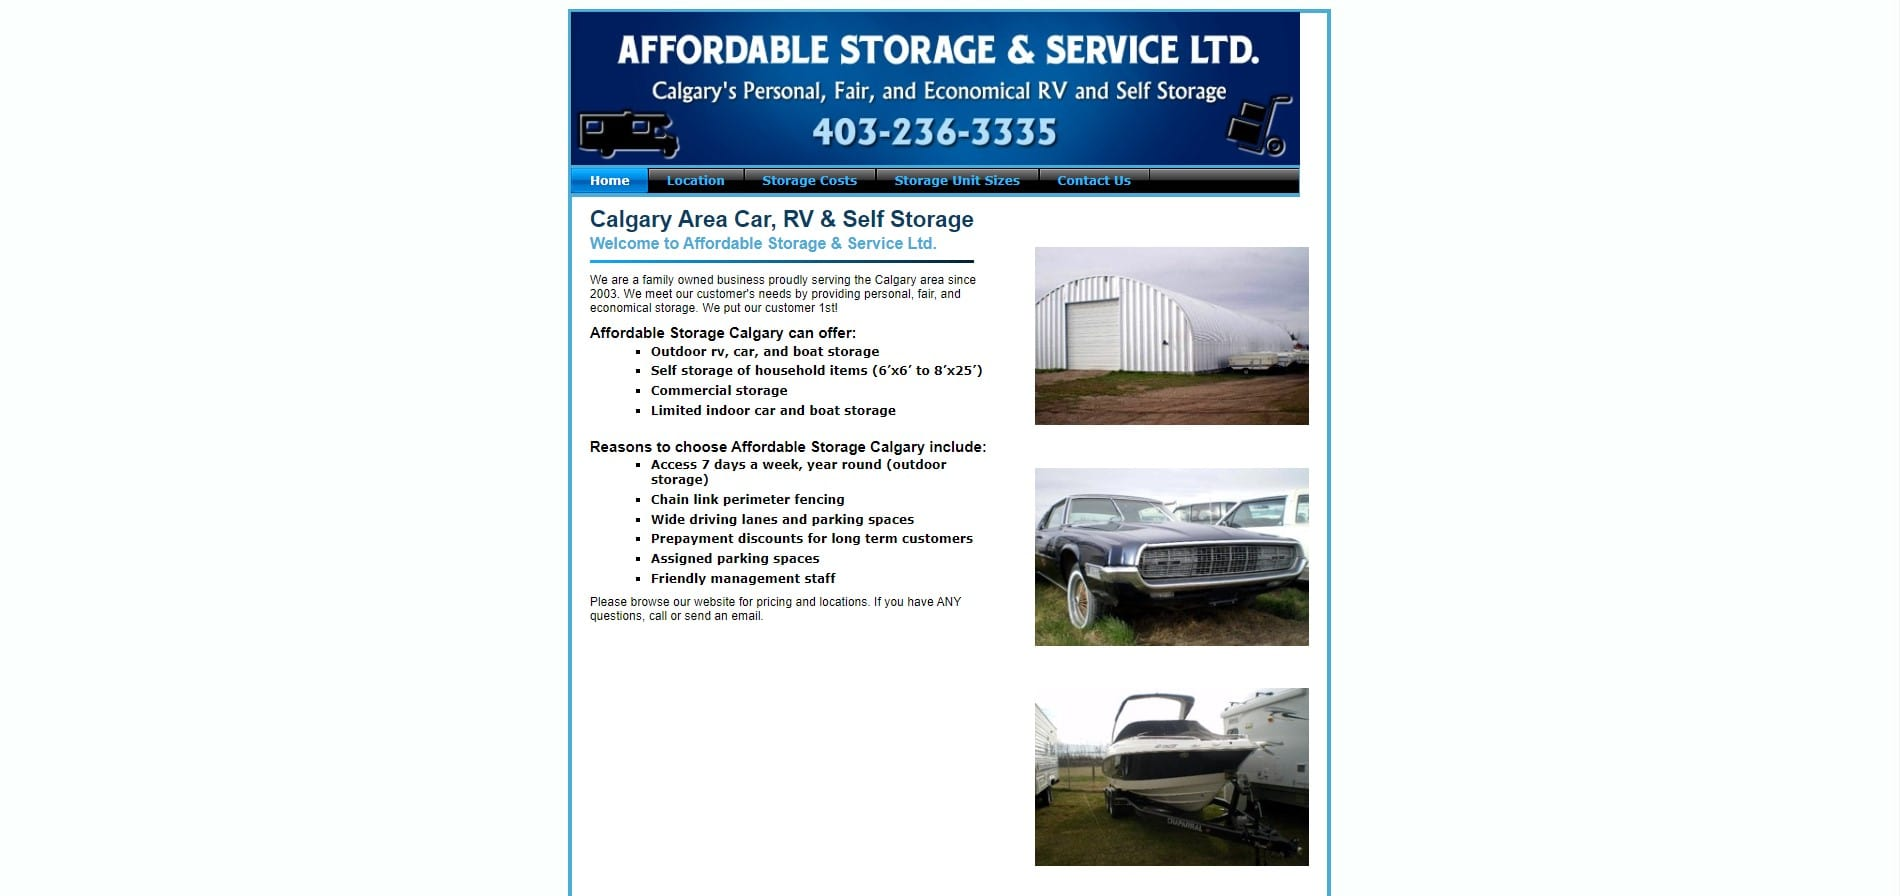 Affordable Storage's Homepage